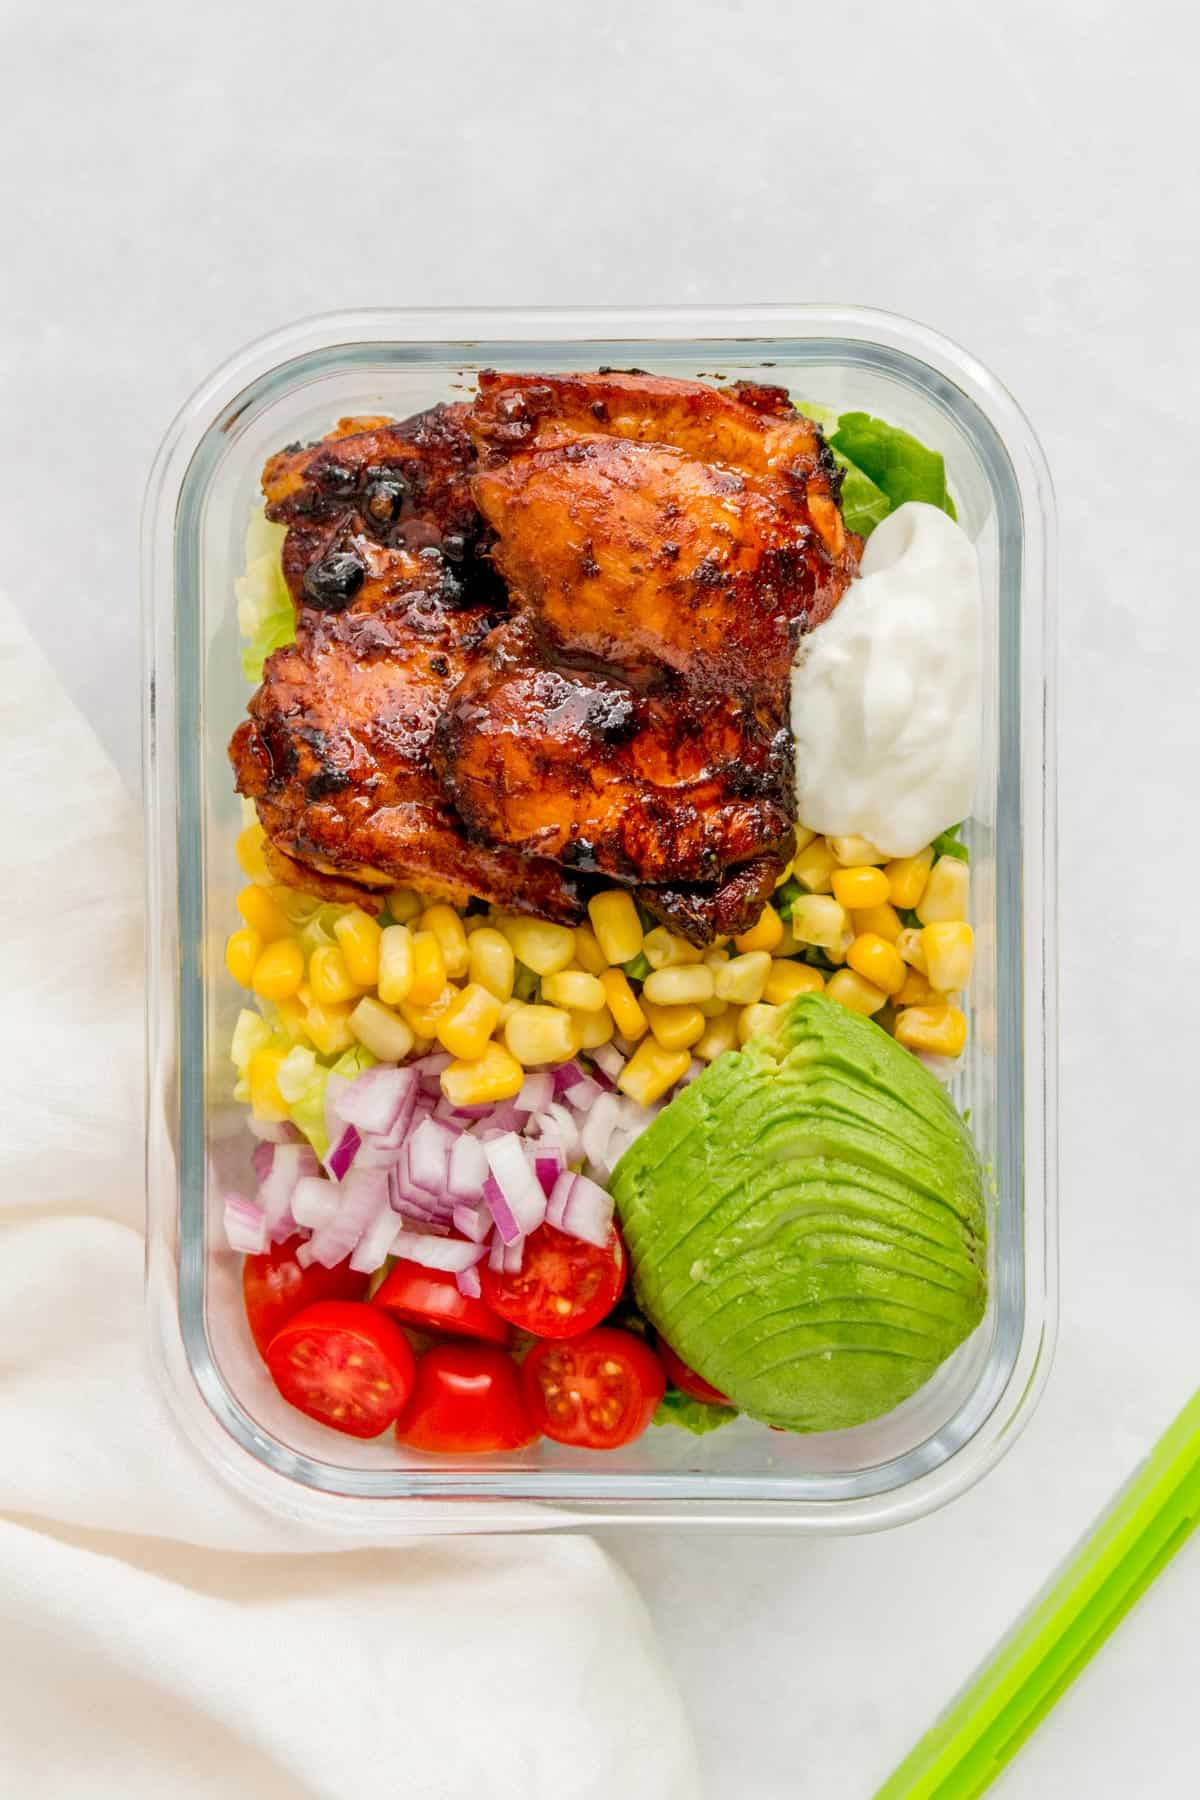 Honey Chipotle Salad in a meal prep container.